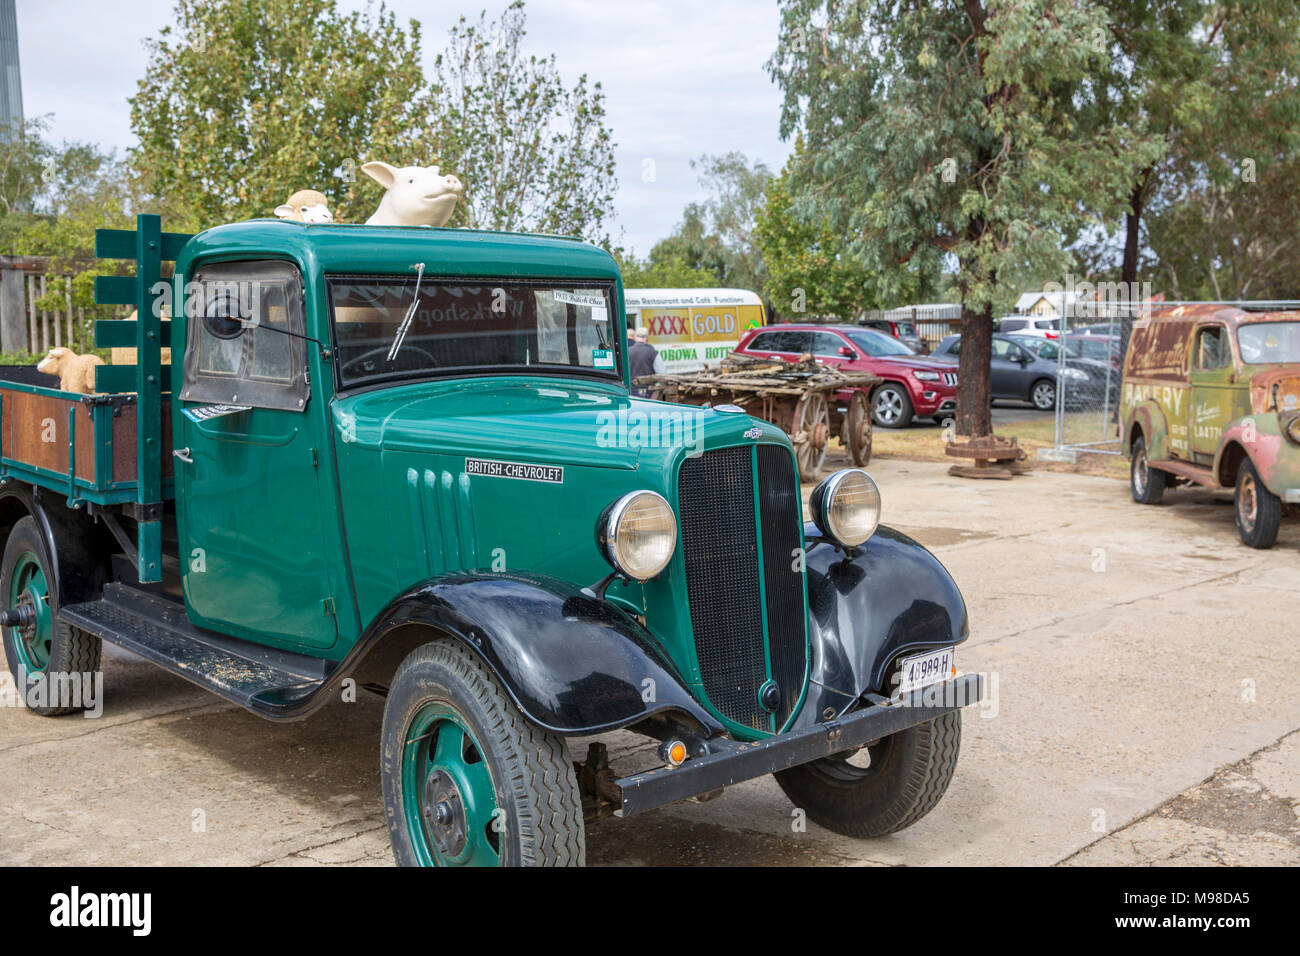 Vintage classic British Chevrolet vehicle on display at The